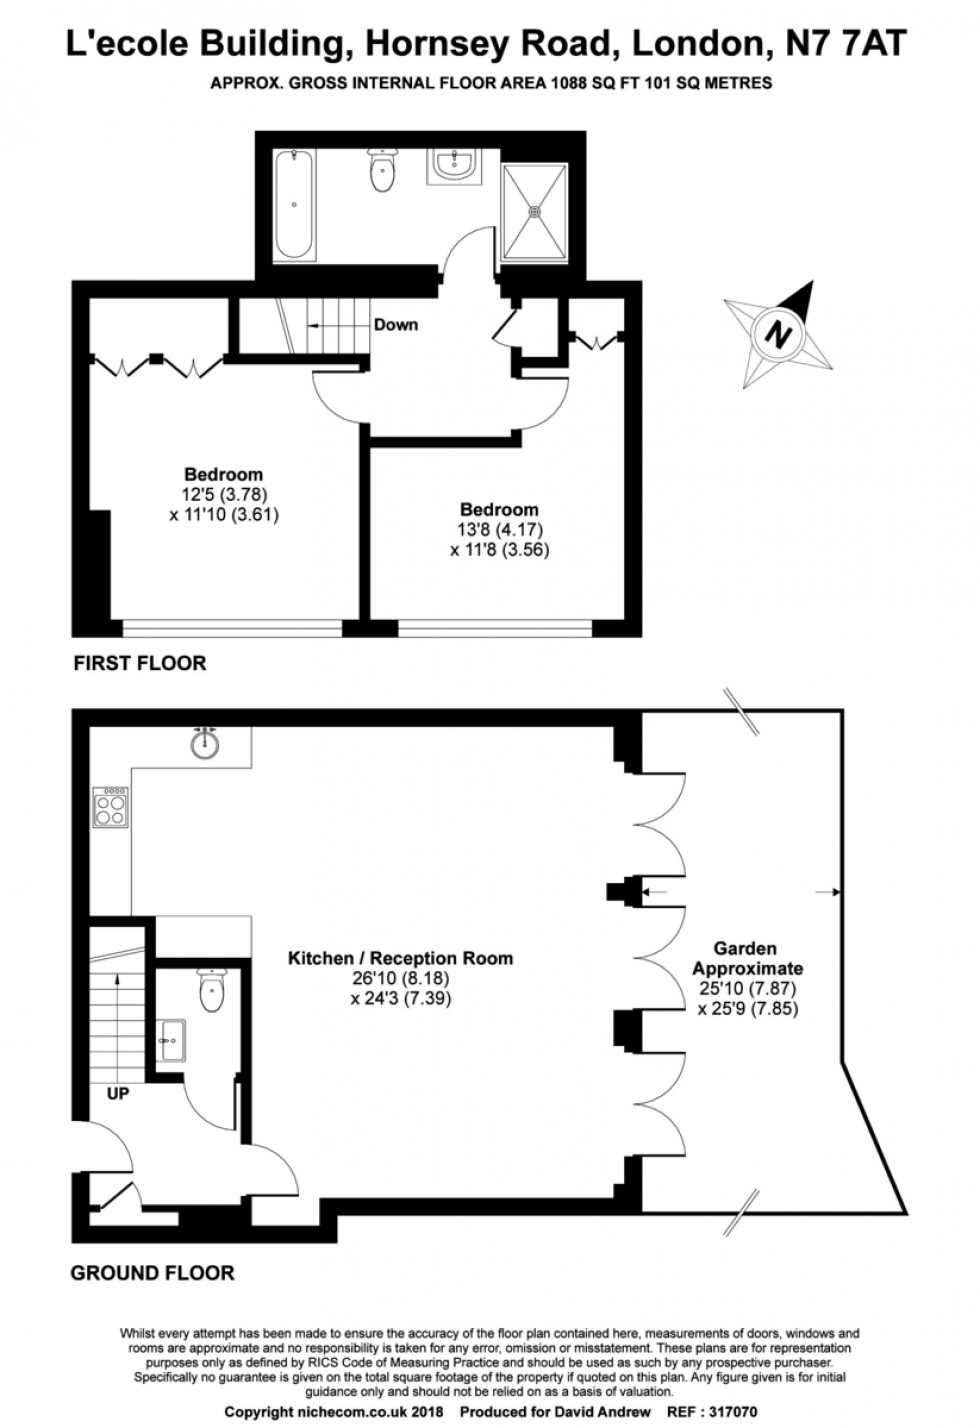 Floorplan for Hornsey Road, N7 7AT